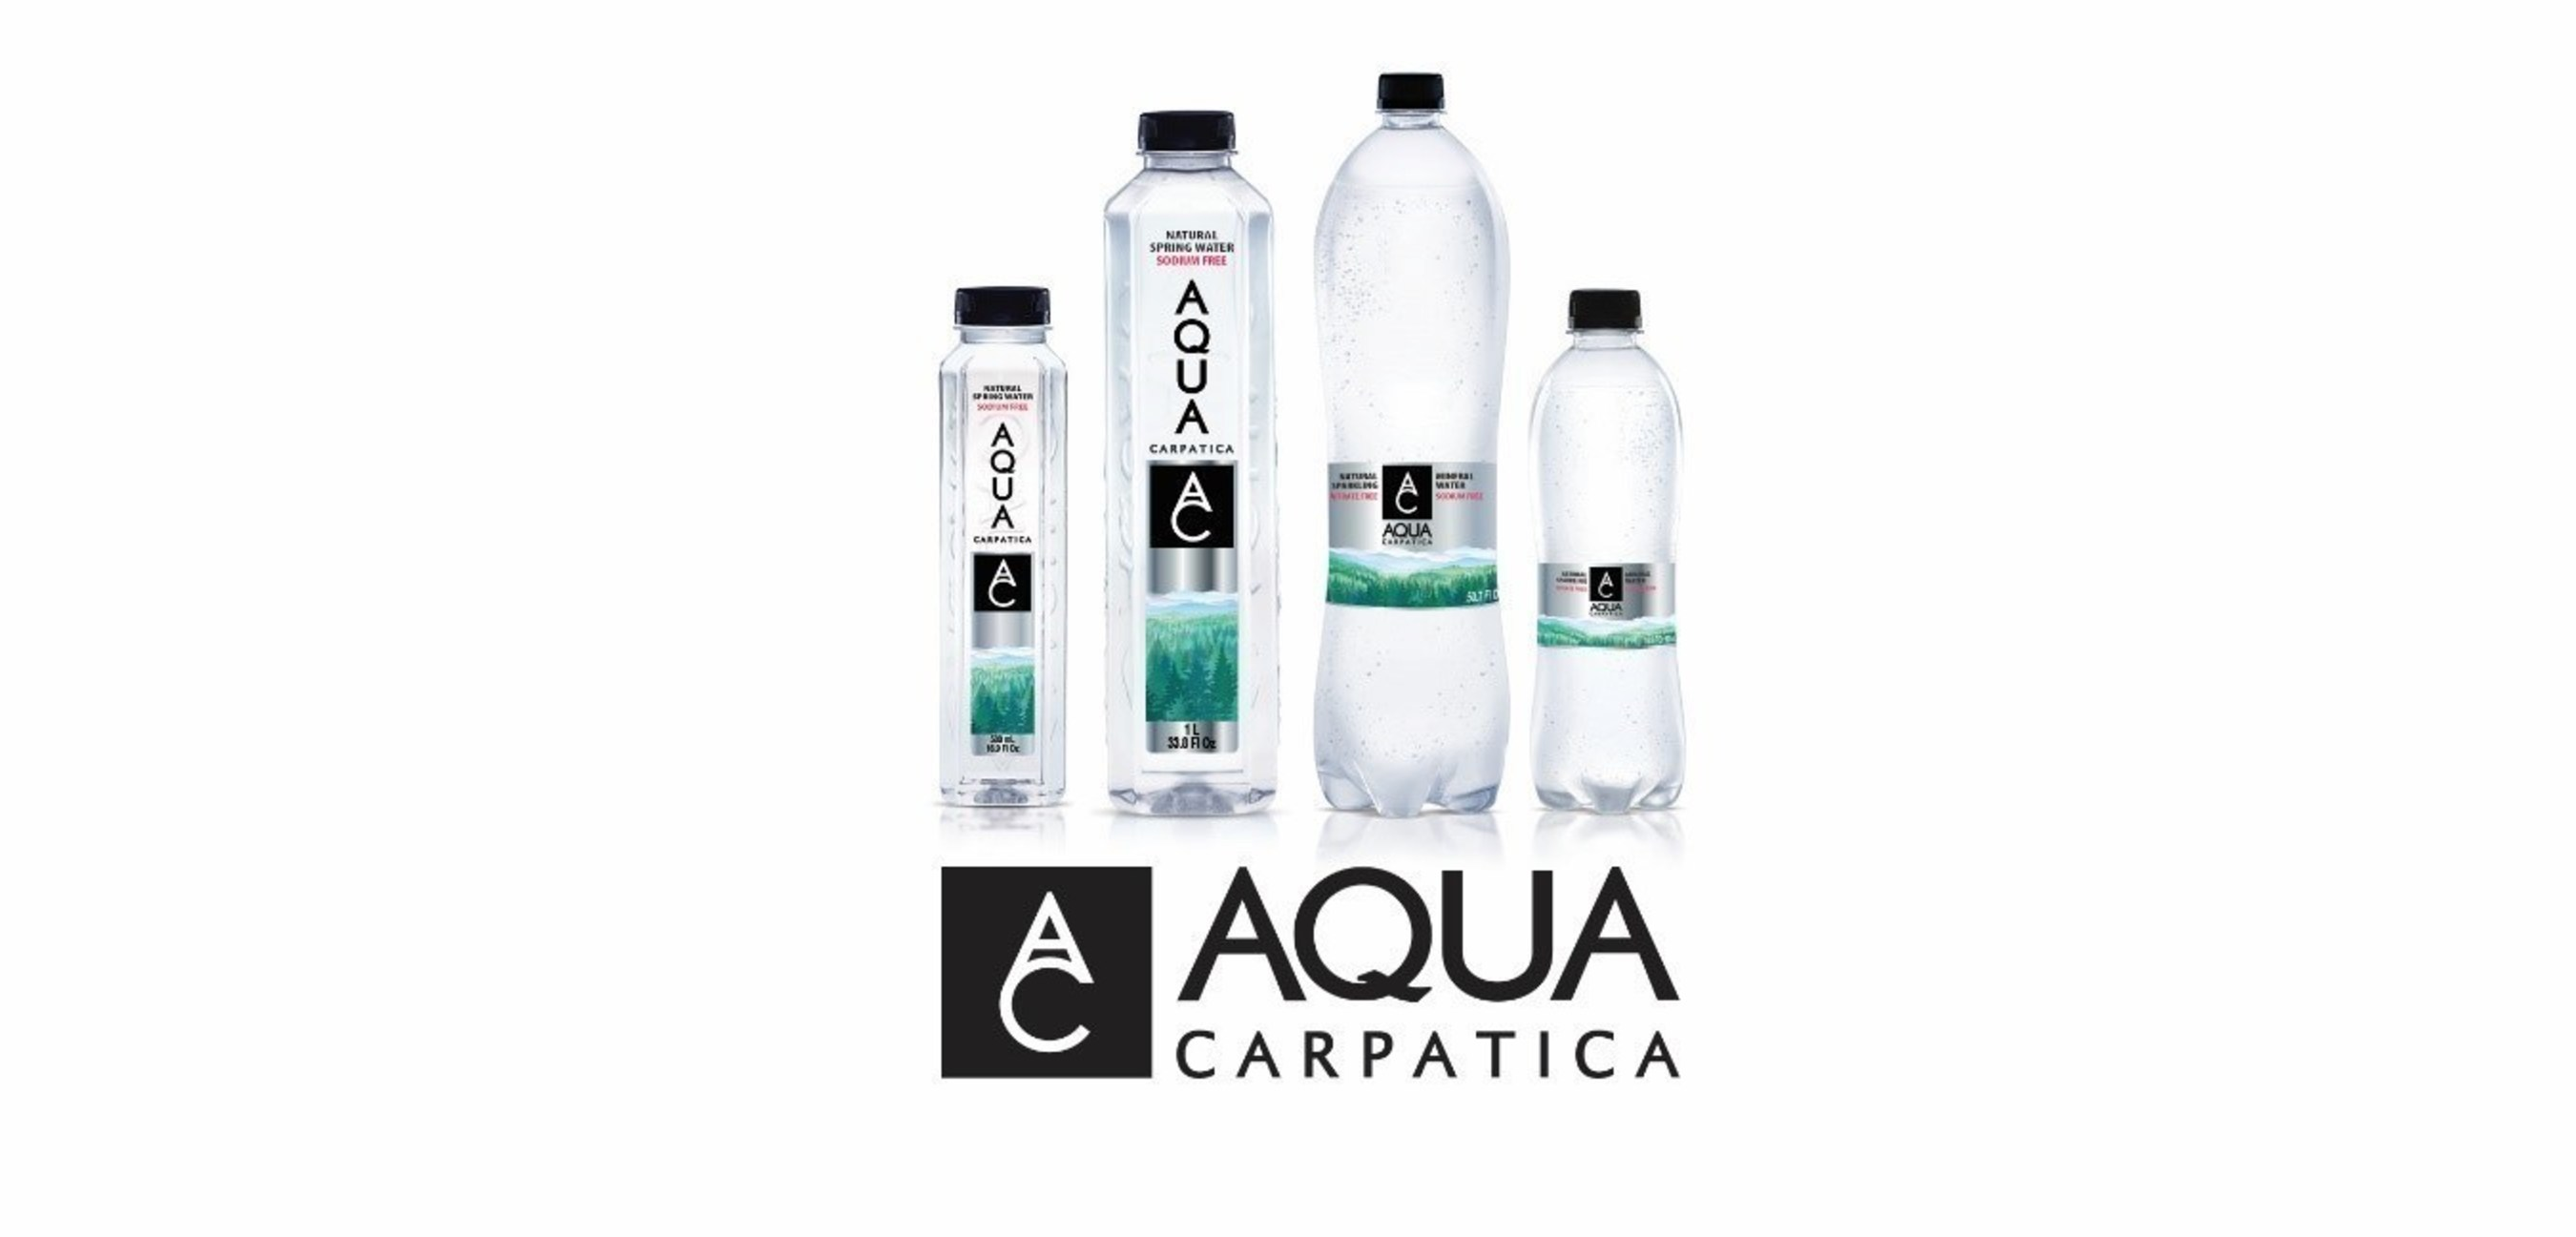 AQUA Carpatica Launches Nitrate-Free Waters at Whole Foods Market Stores